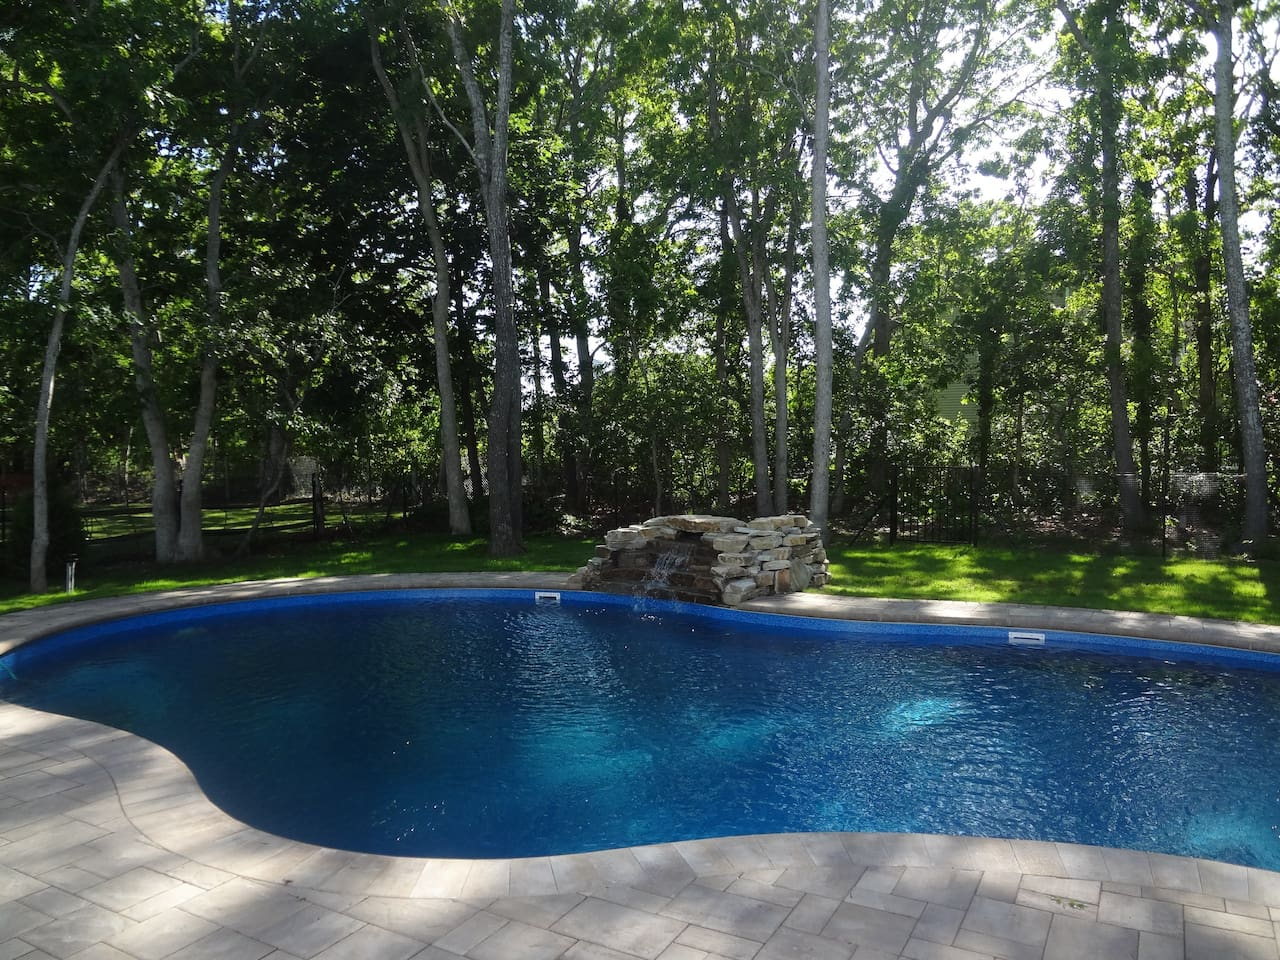 Blissful pool in tranquil setting